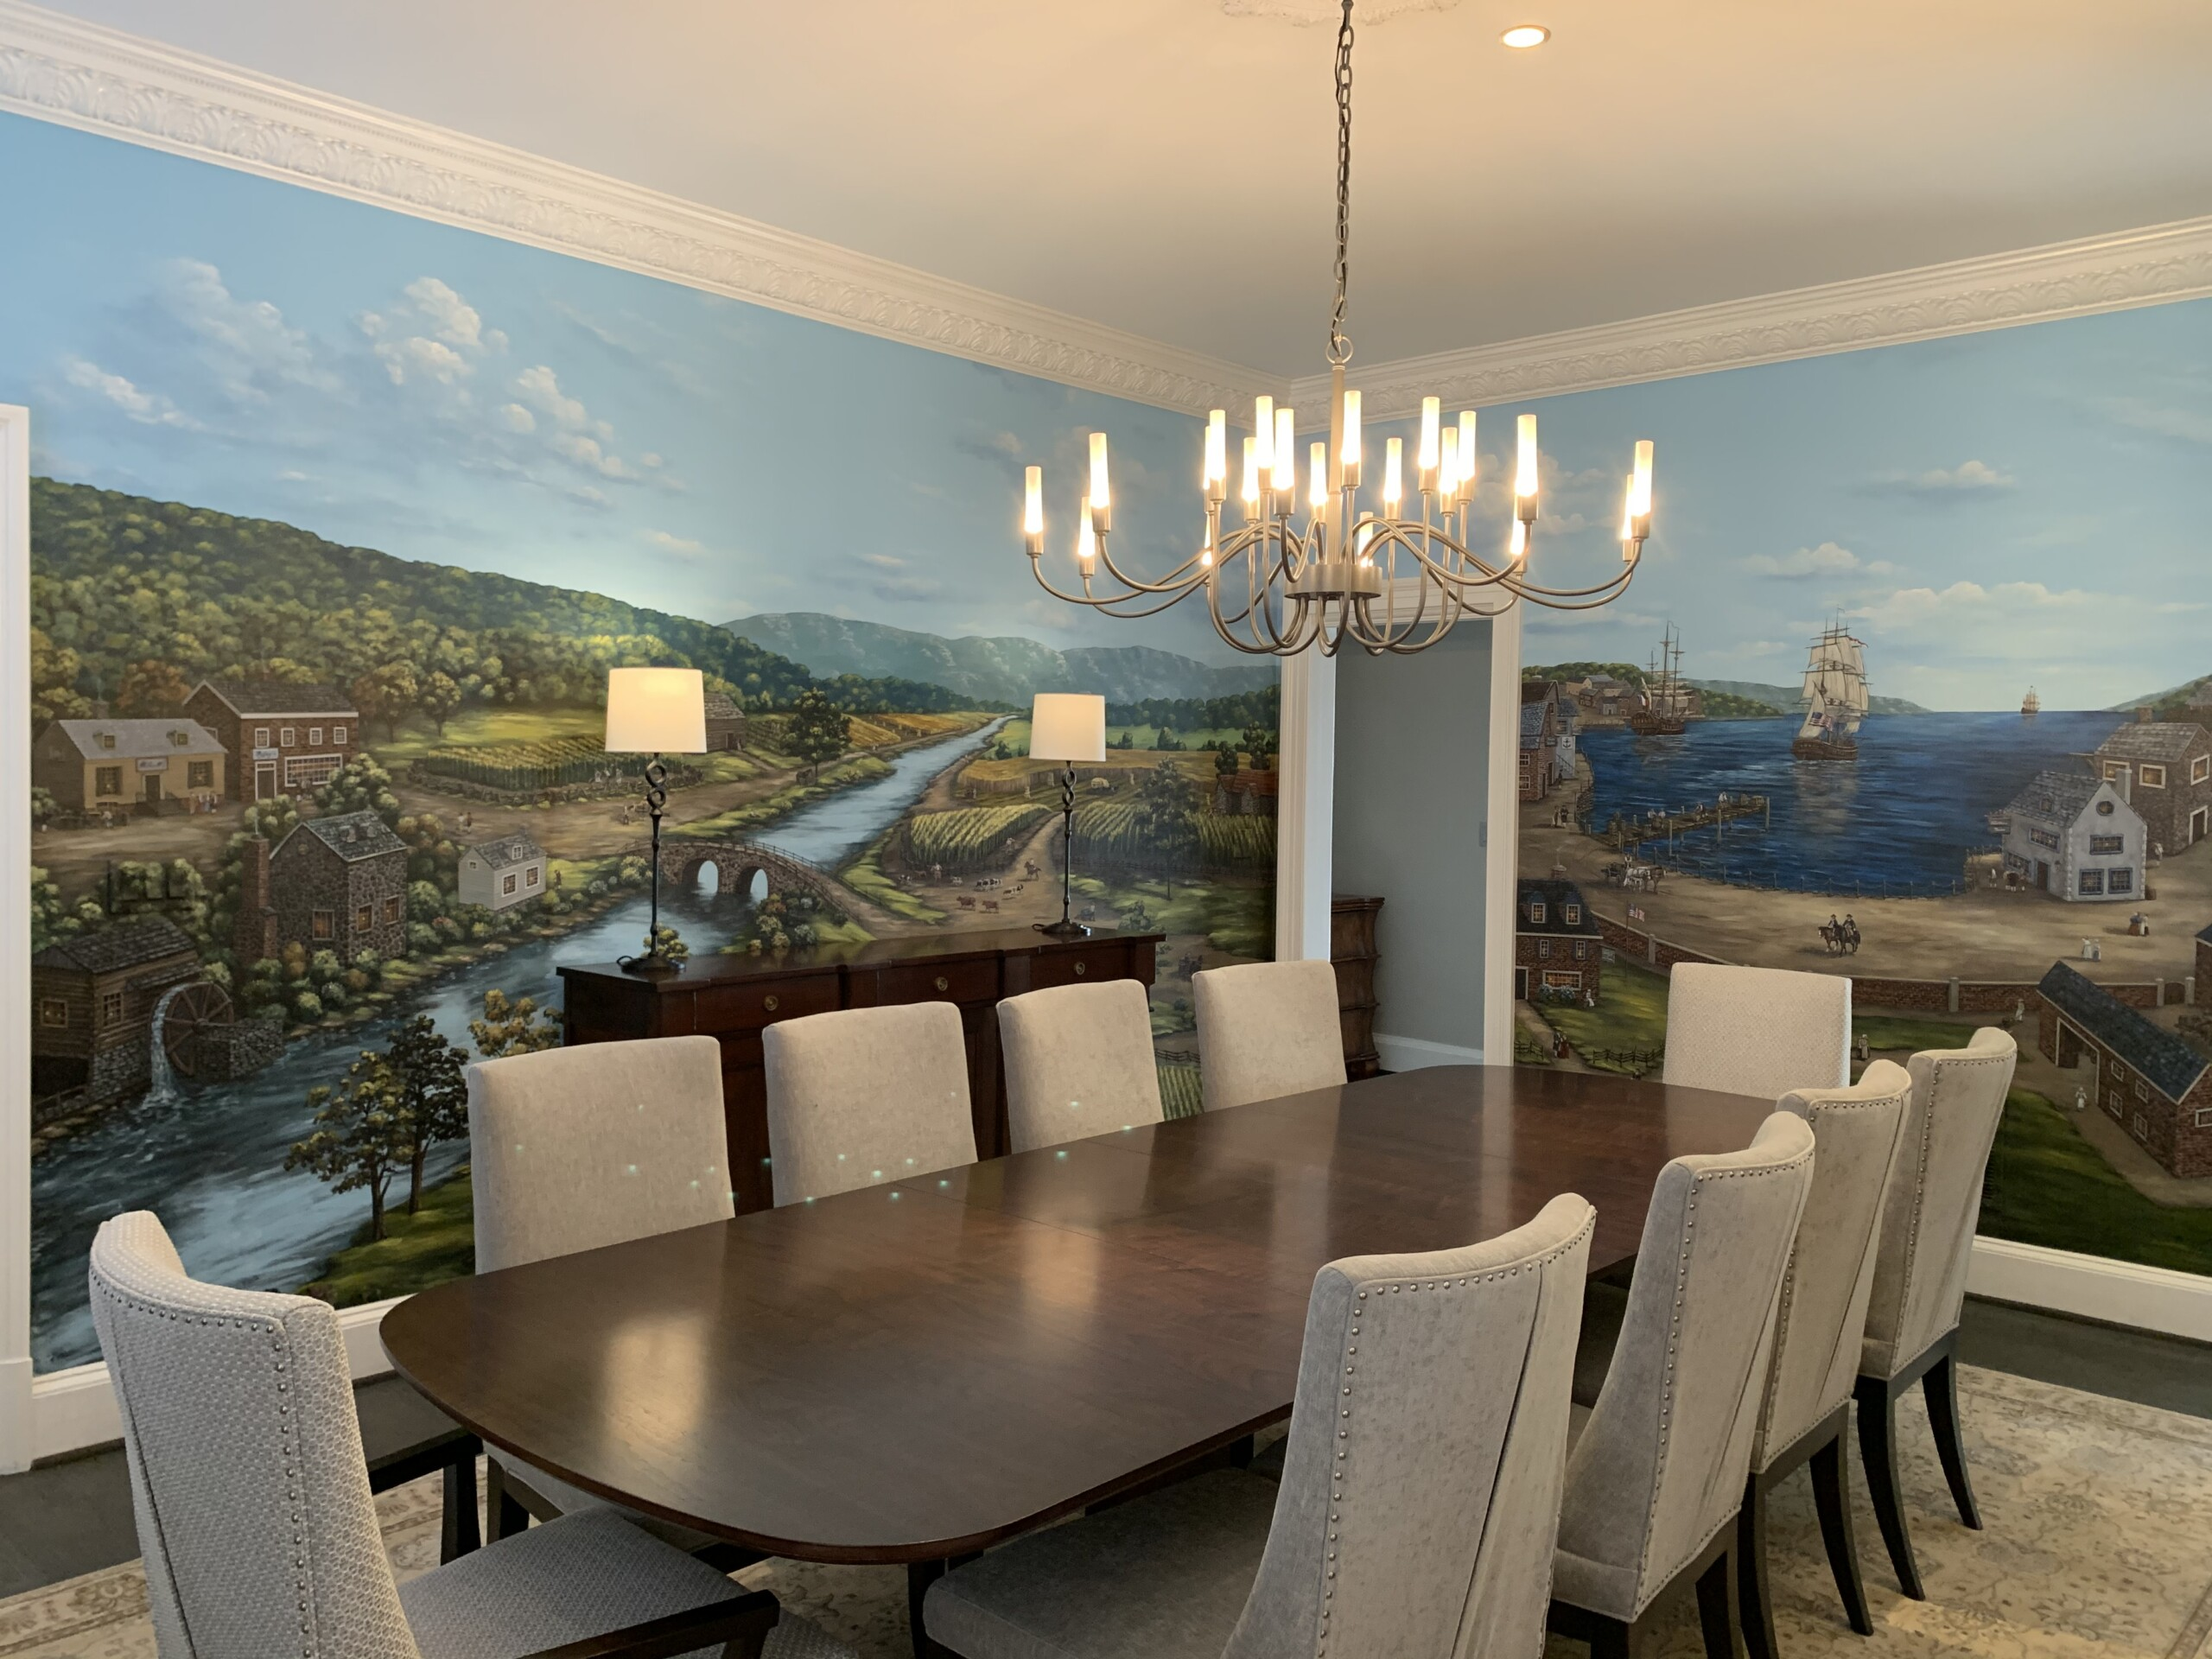 Colonial Mural by Tom Taylor of Mural Art LLC. Hand-Painted in a dining room.